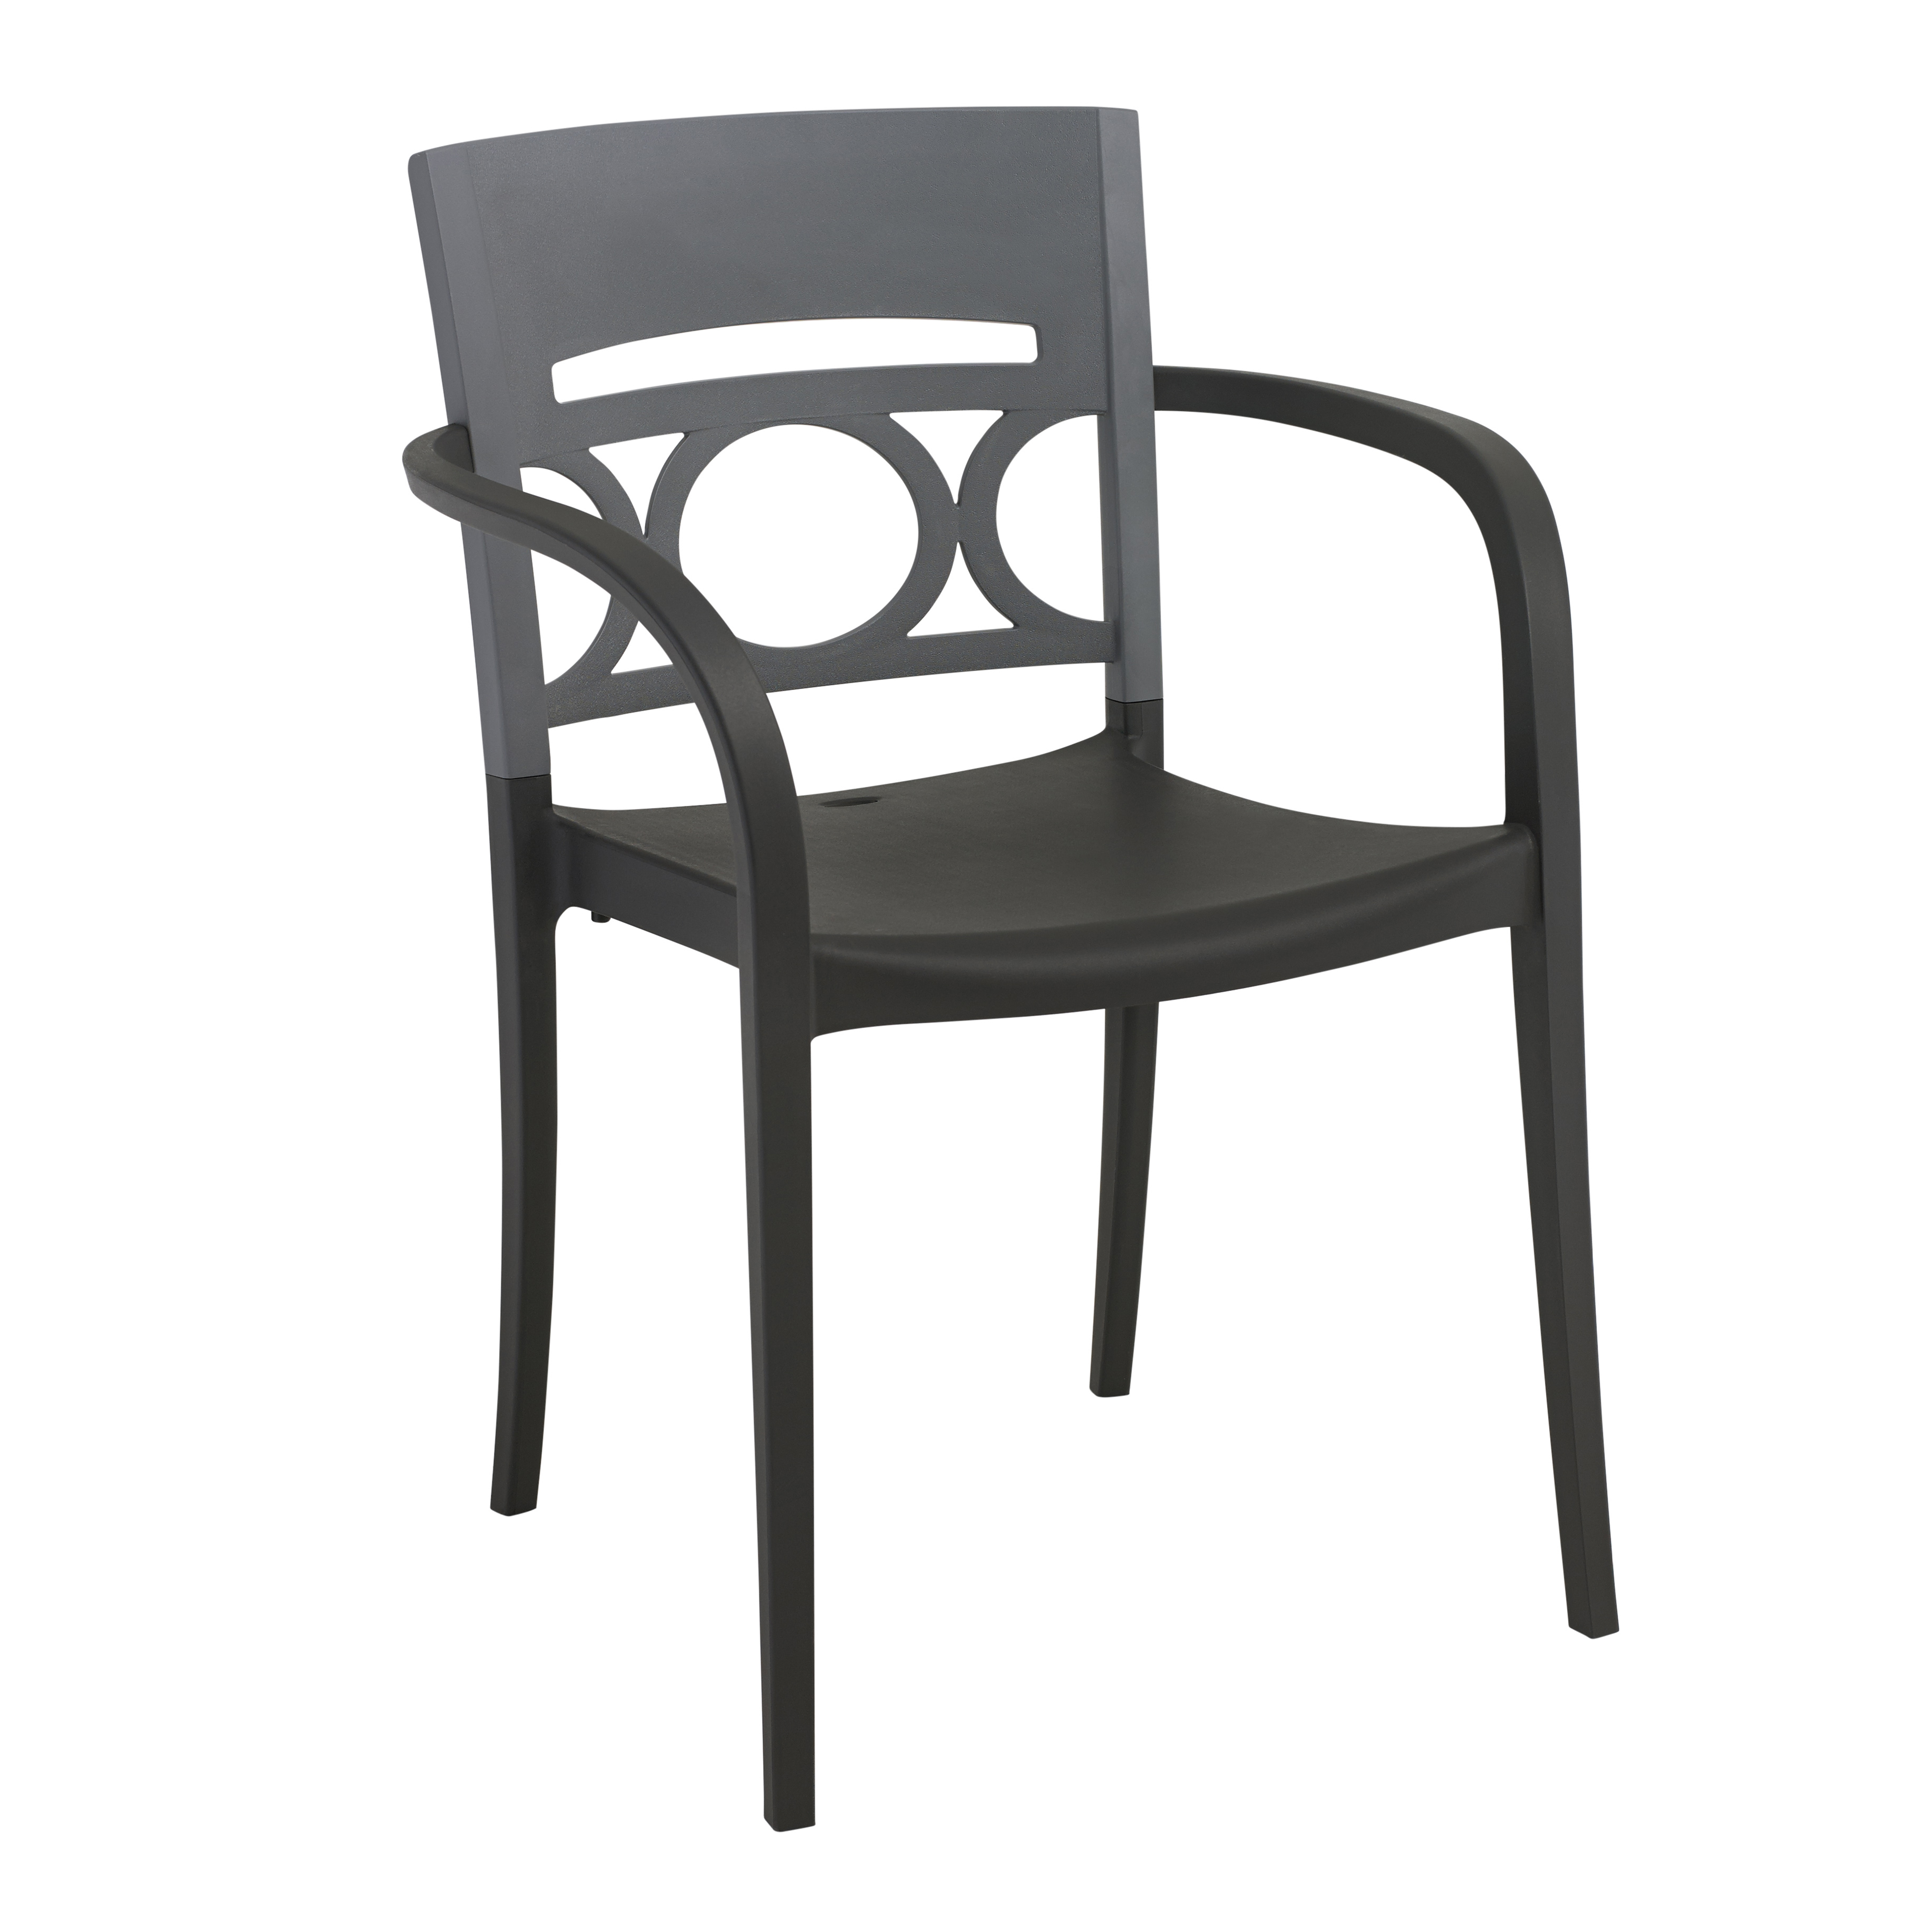 Grosfillex US655579 chair, armchair, stacking, outdoor